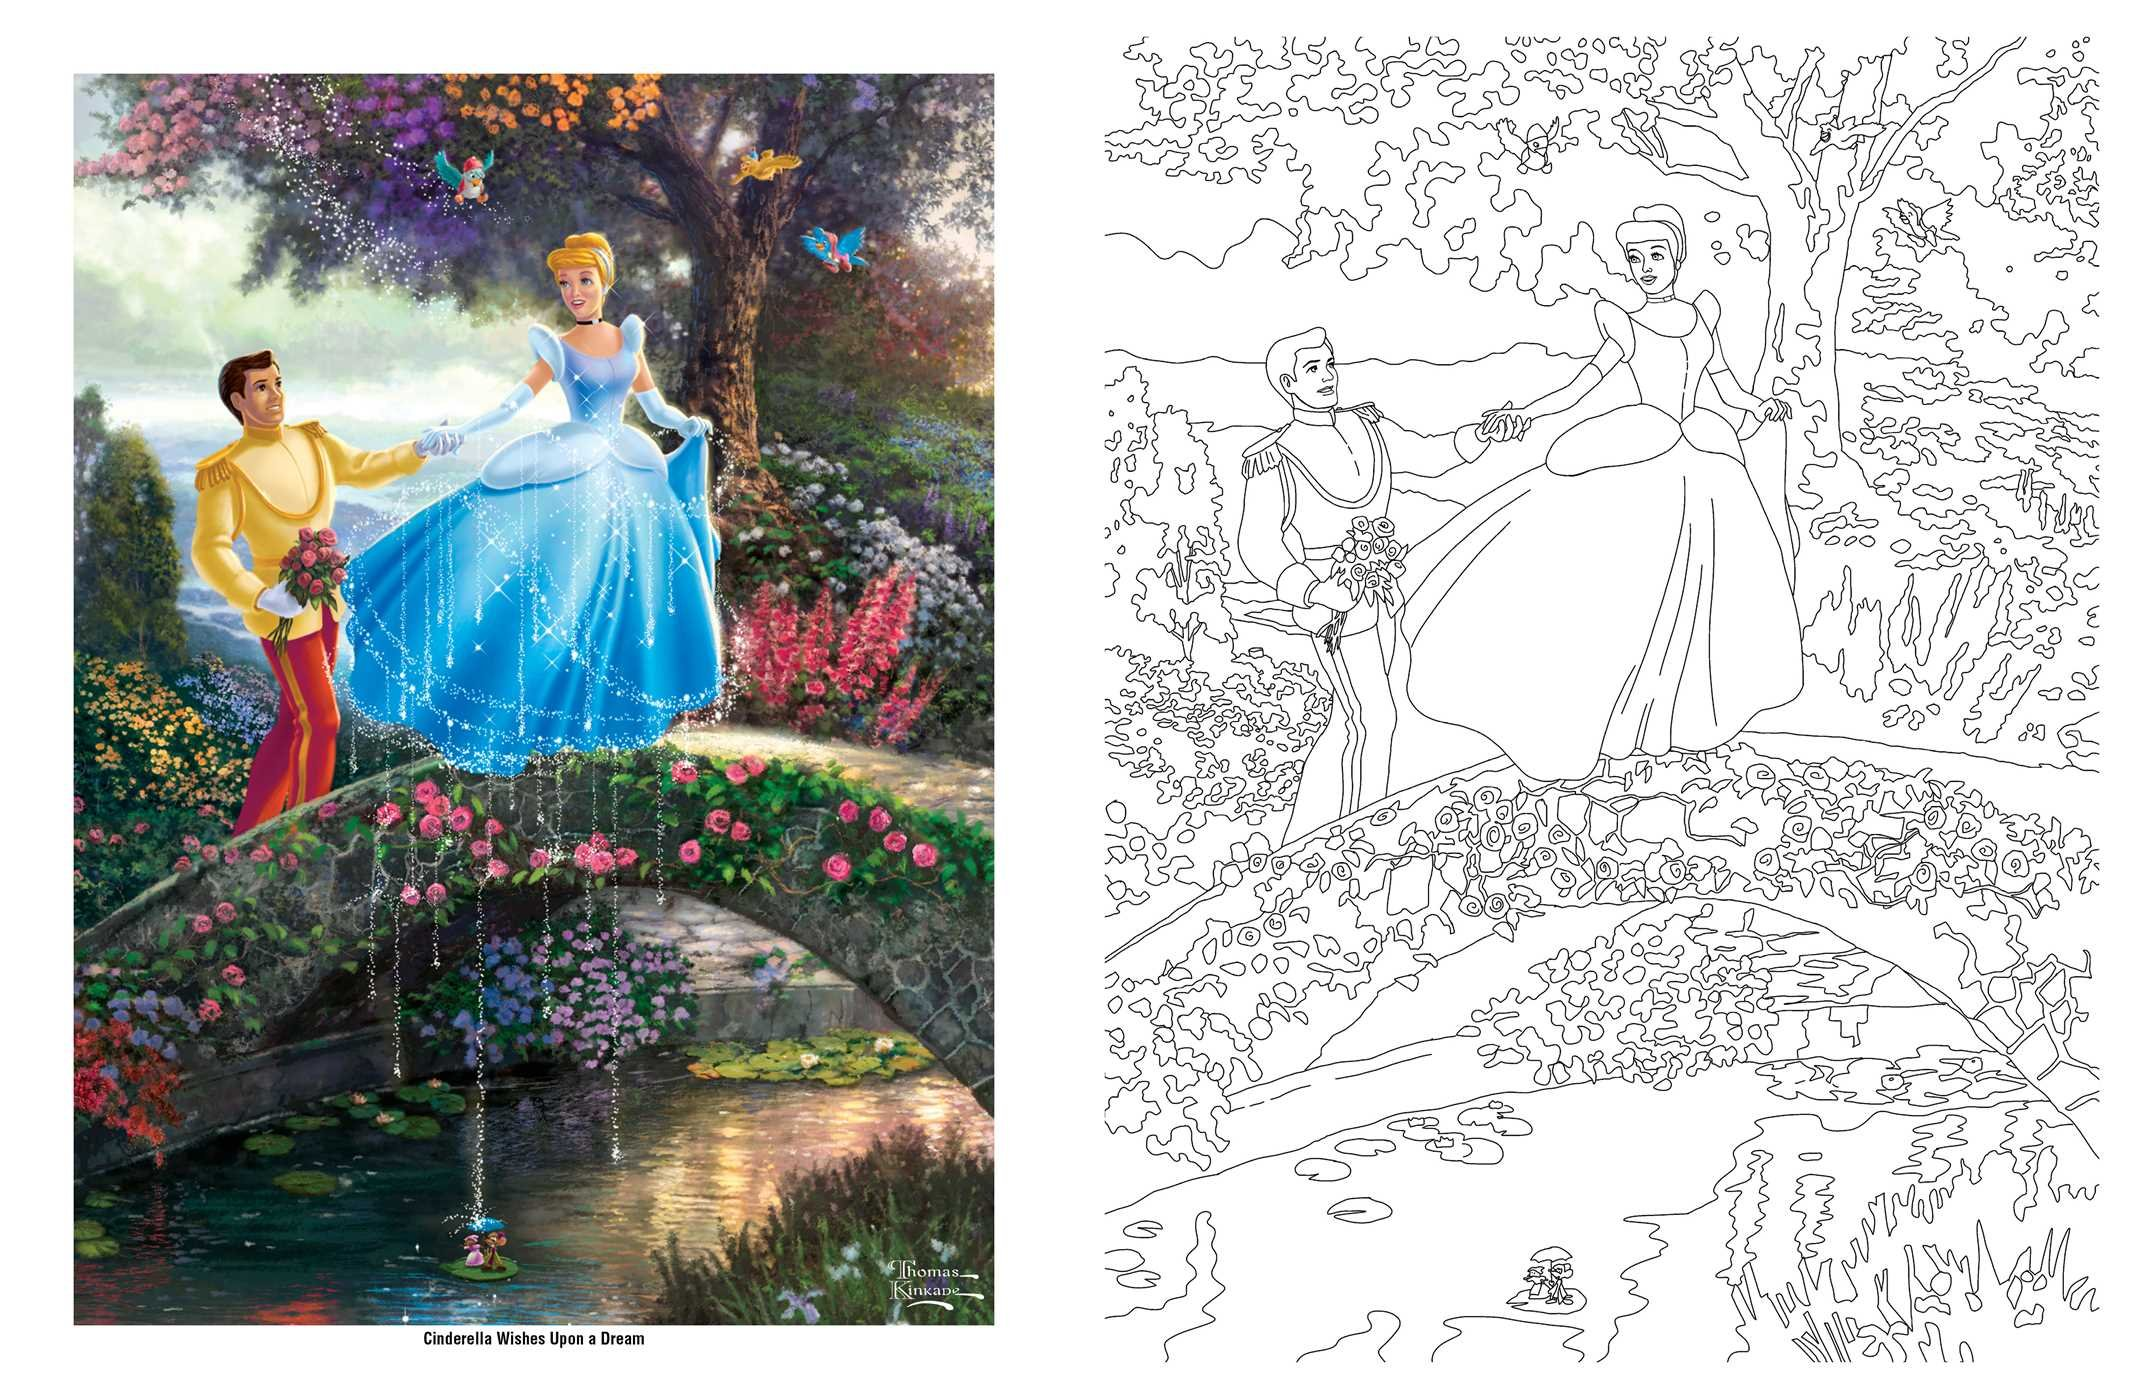 Walt Disney Coloring Books in 2020 | Disney coloring pages, Disney ... | 1399x2136